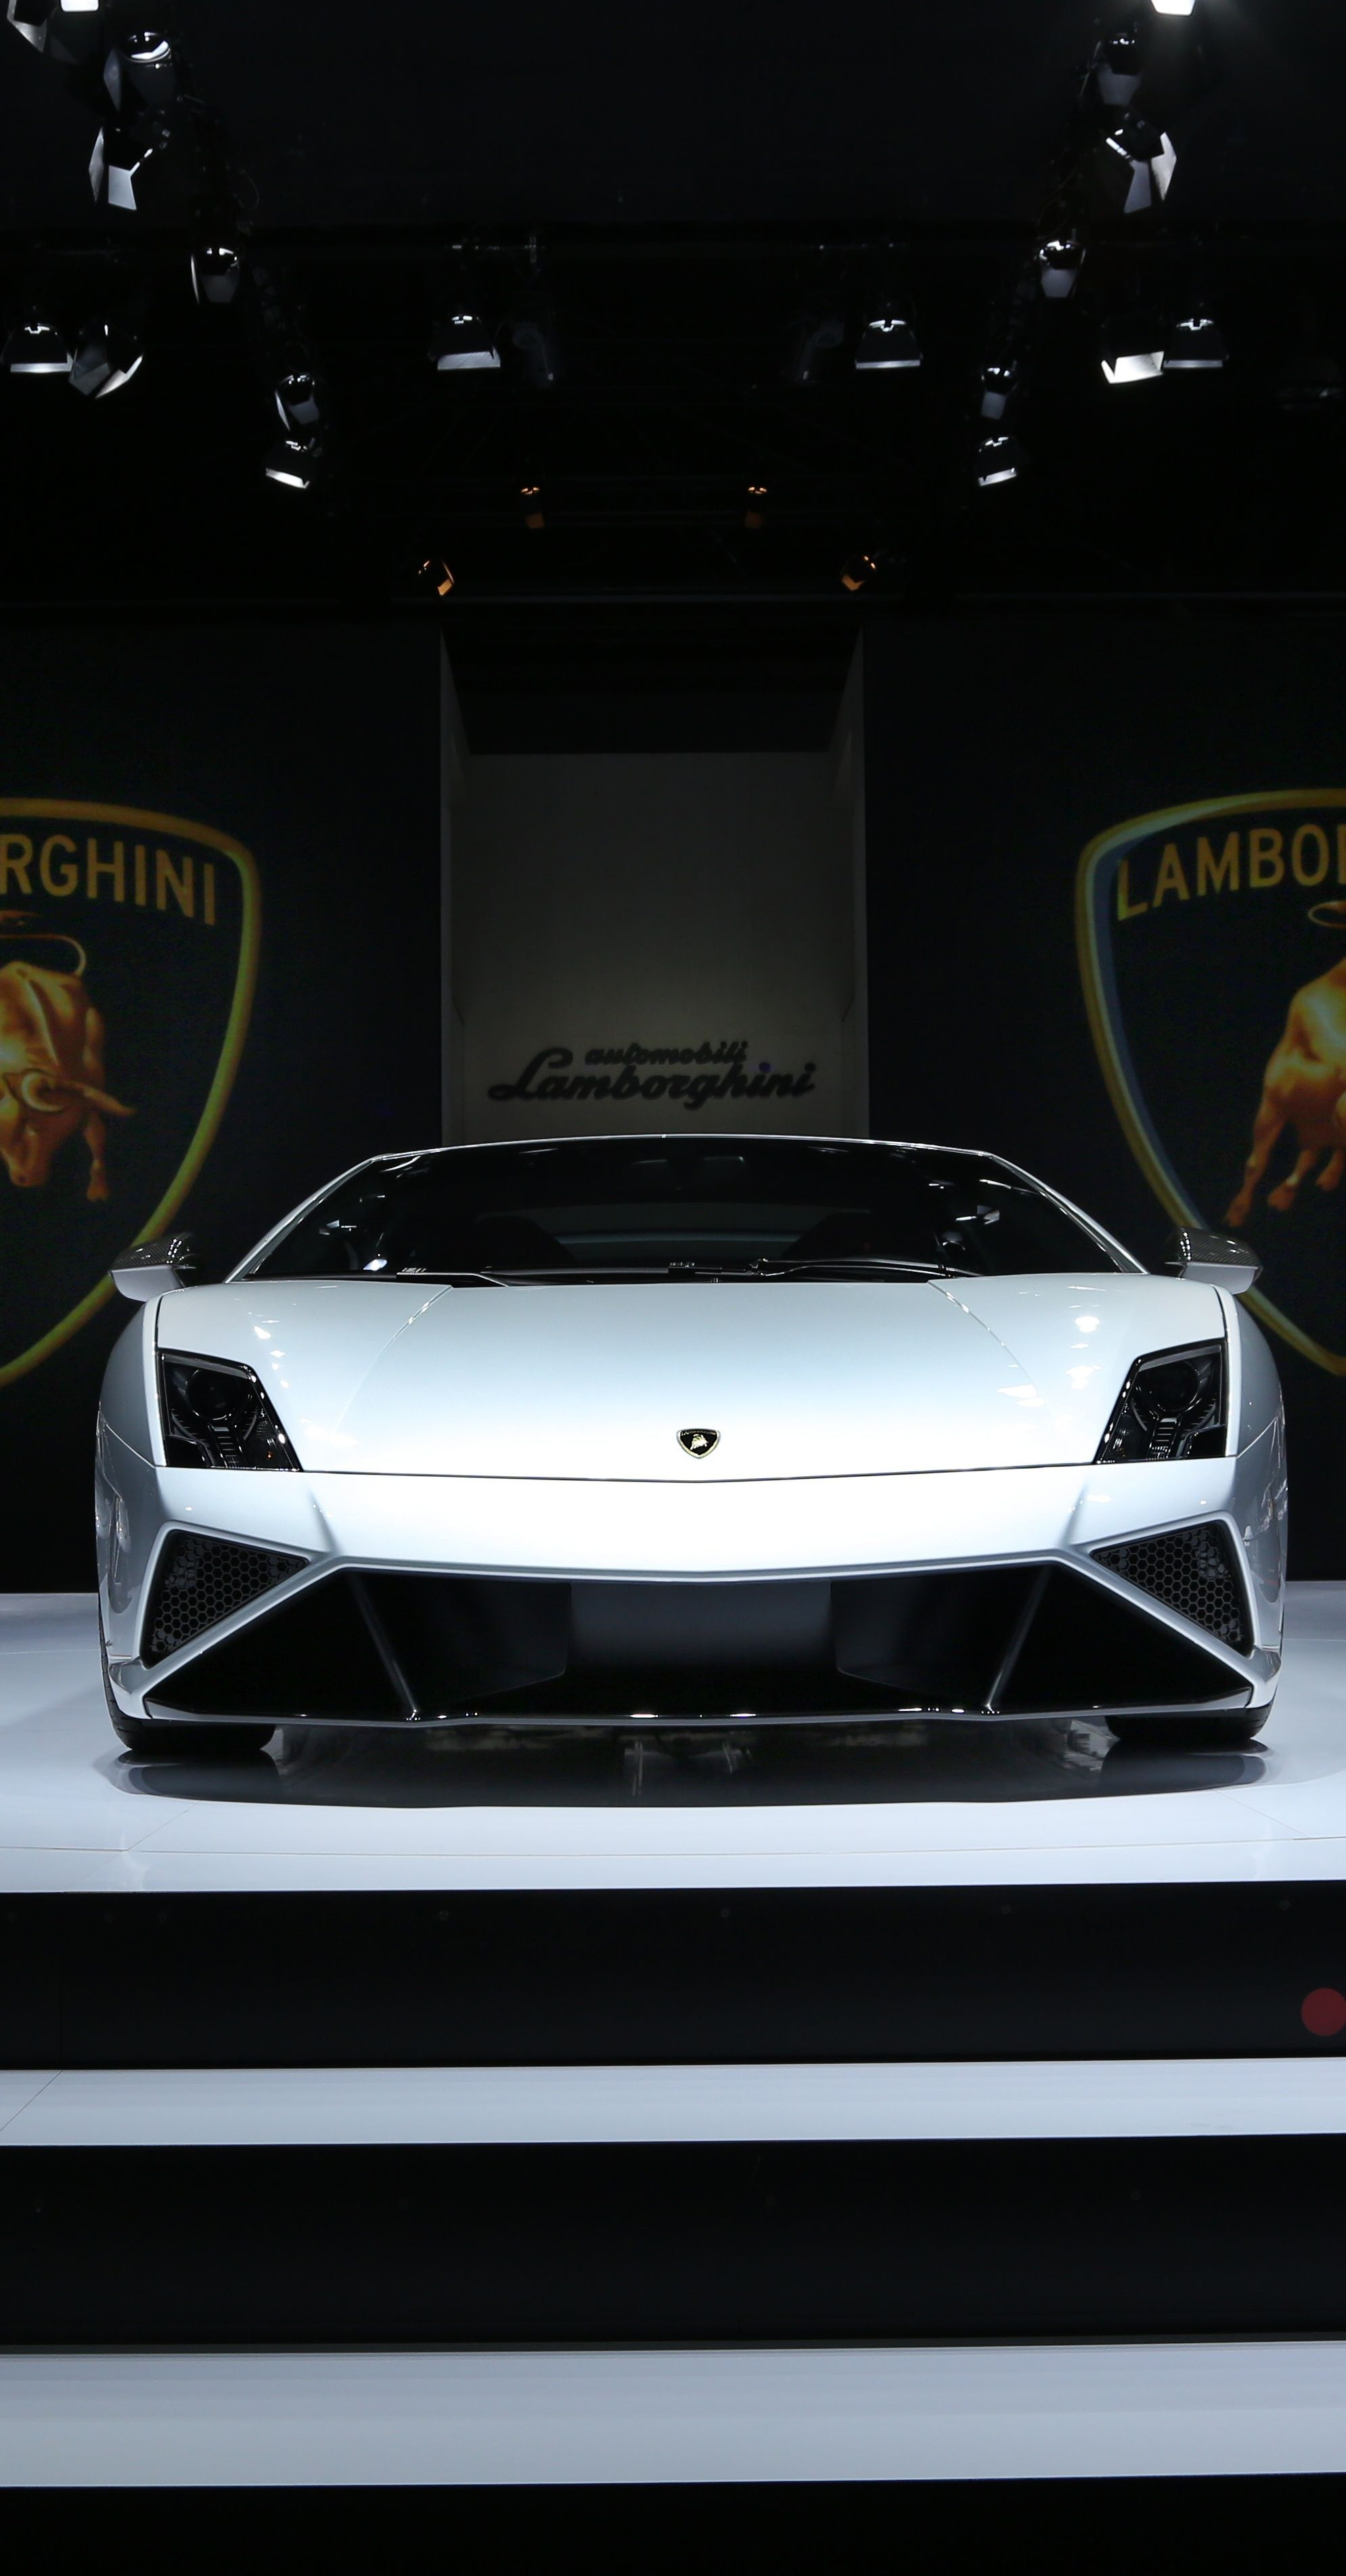 palm avens florida lamborghini dealership financing s aventador beach